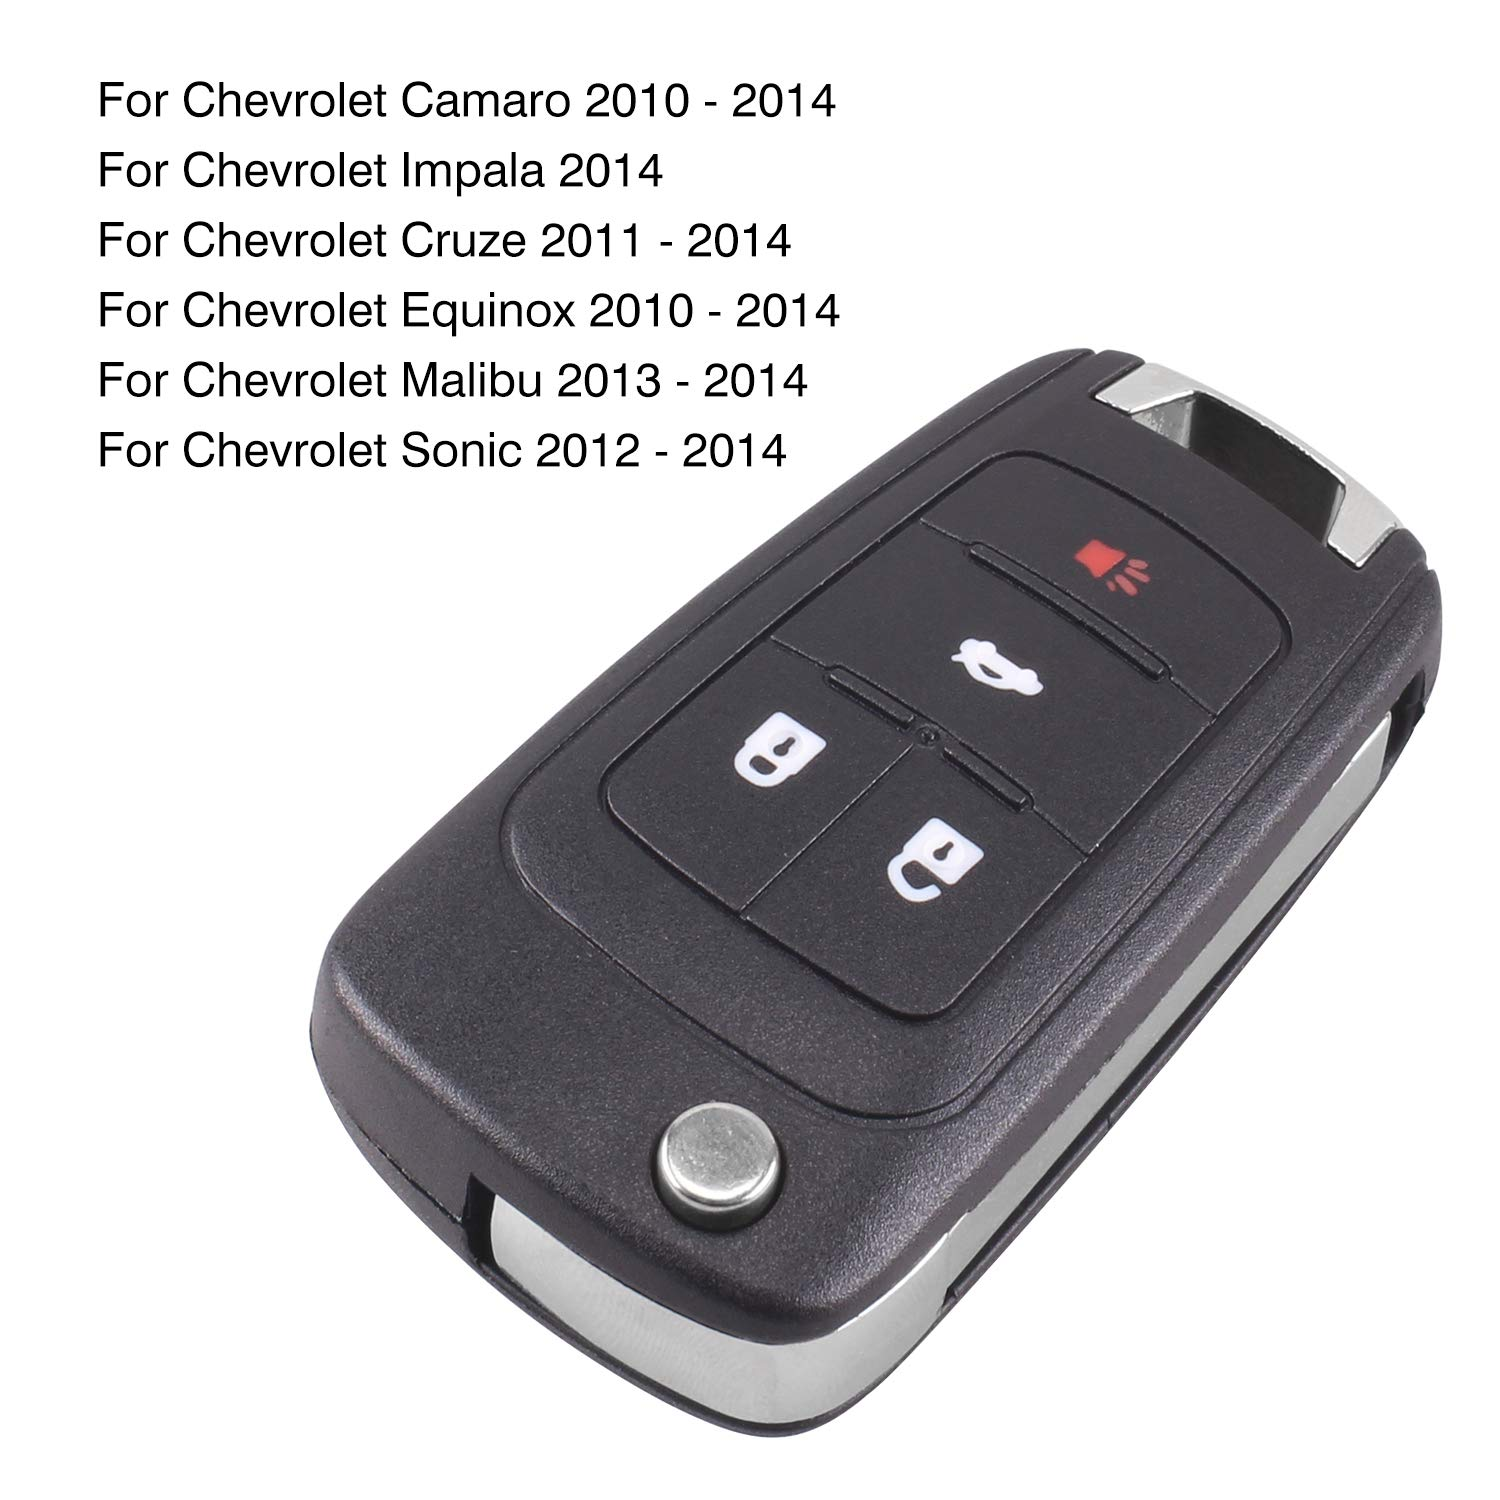 MagiDeal Replacement Folding Remote Key Fob Fits for Chevrolet Chevy Cruze Equinox